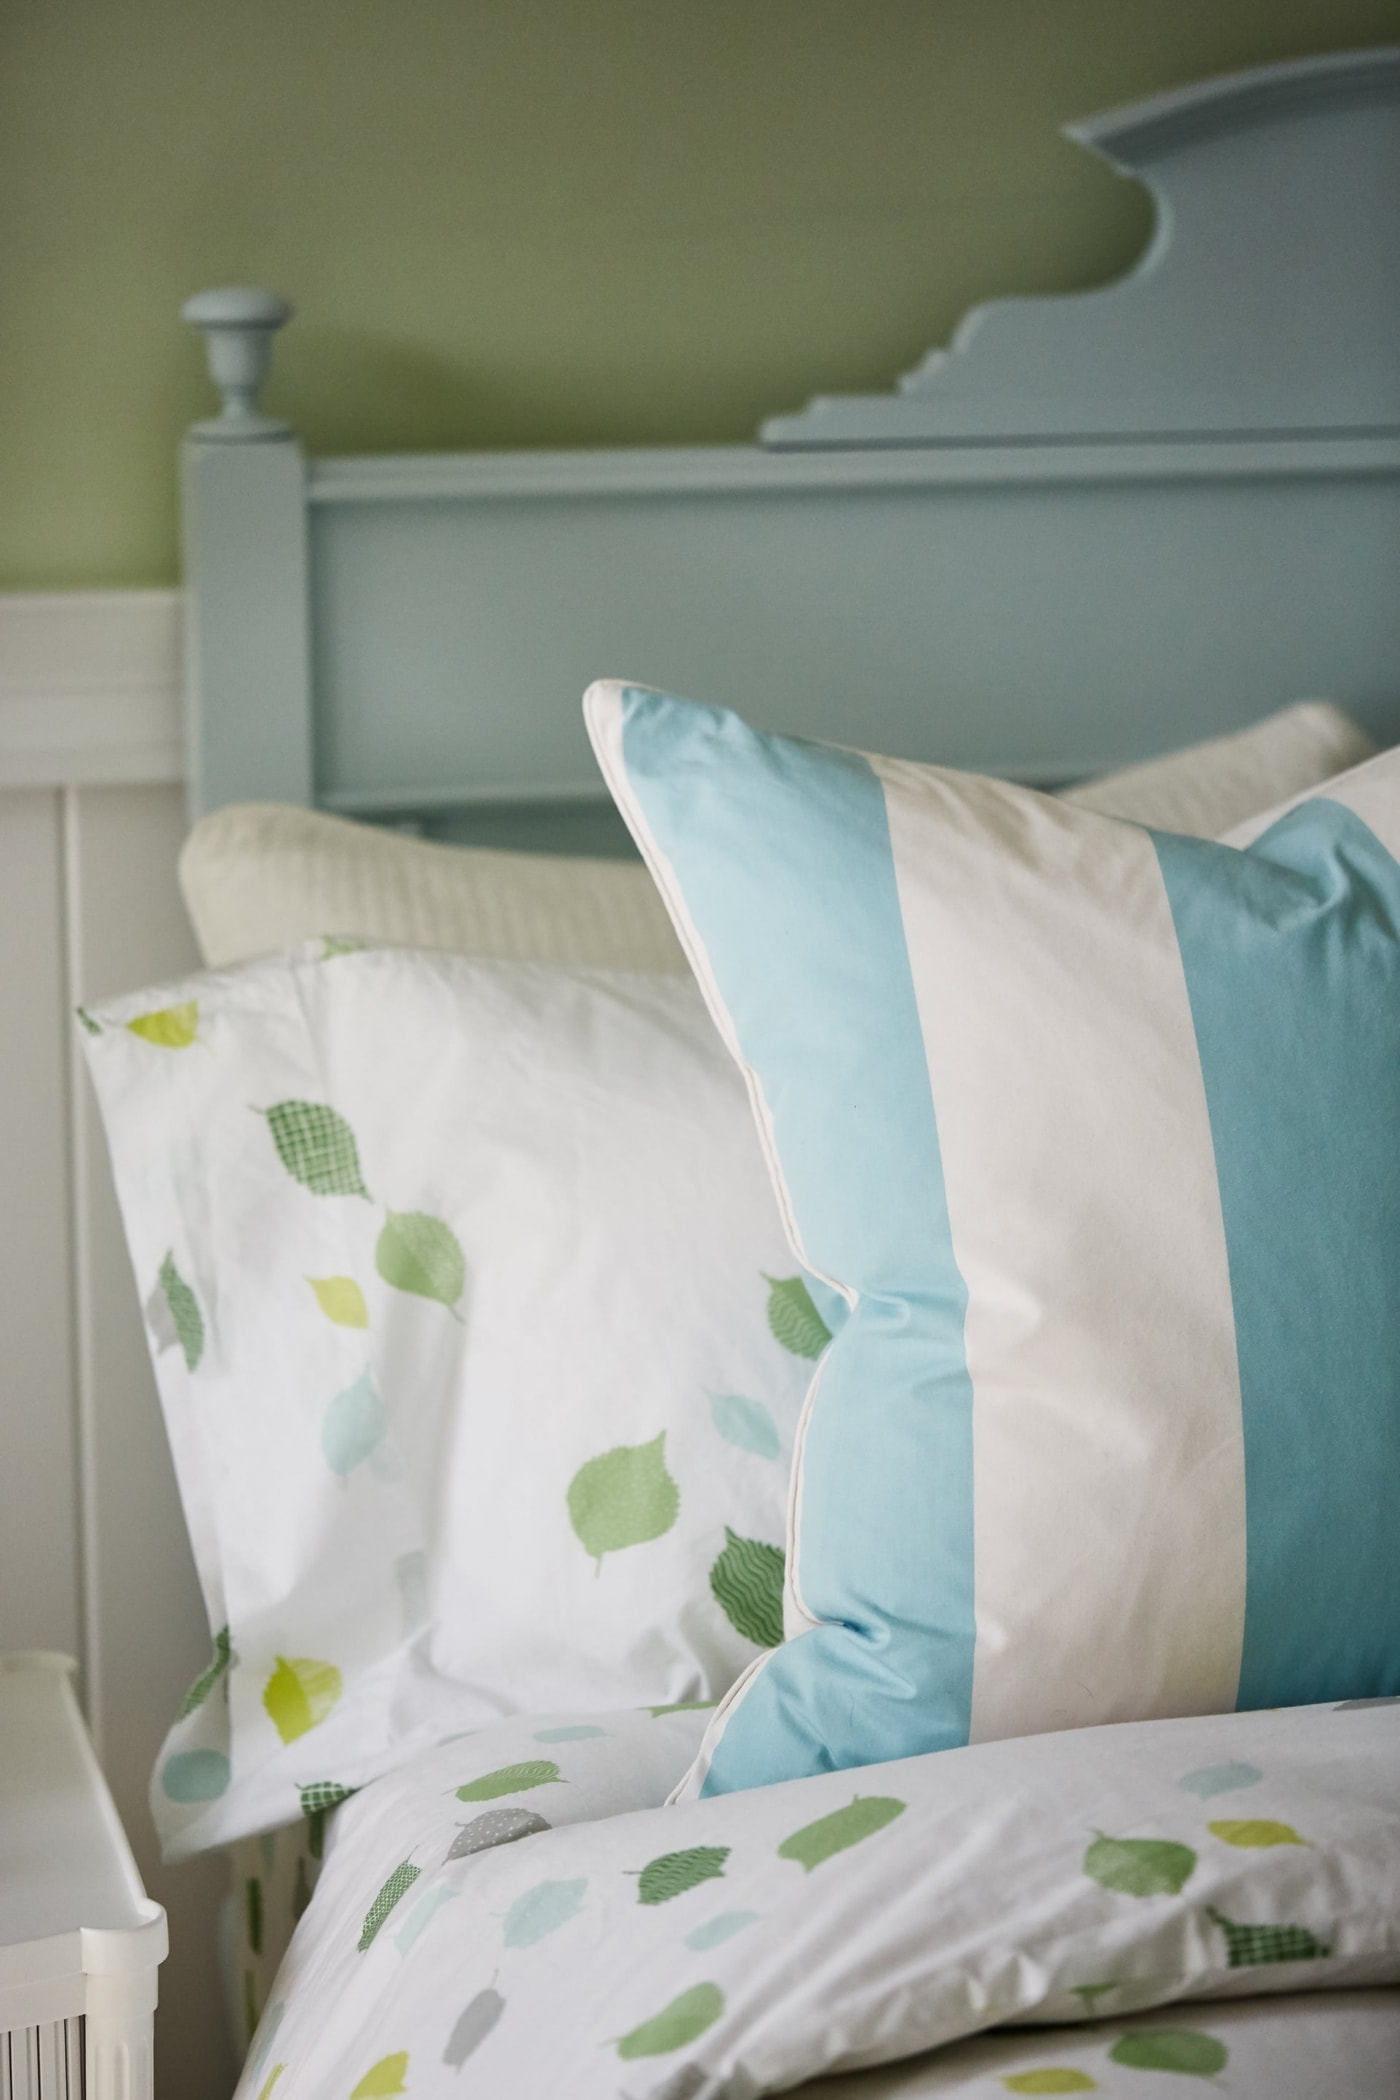 Tiffany blue cottage style bed and striped pillows in Sarah Richardson daughter's room